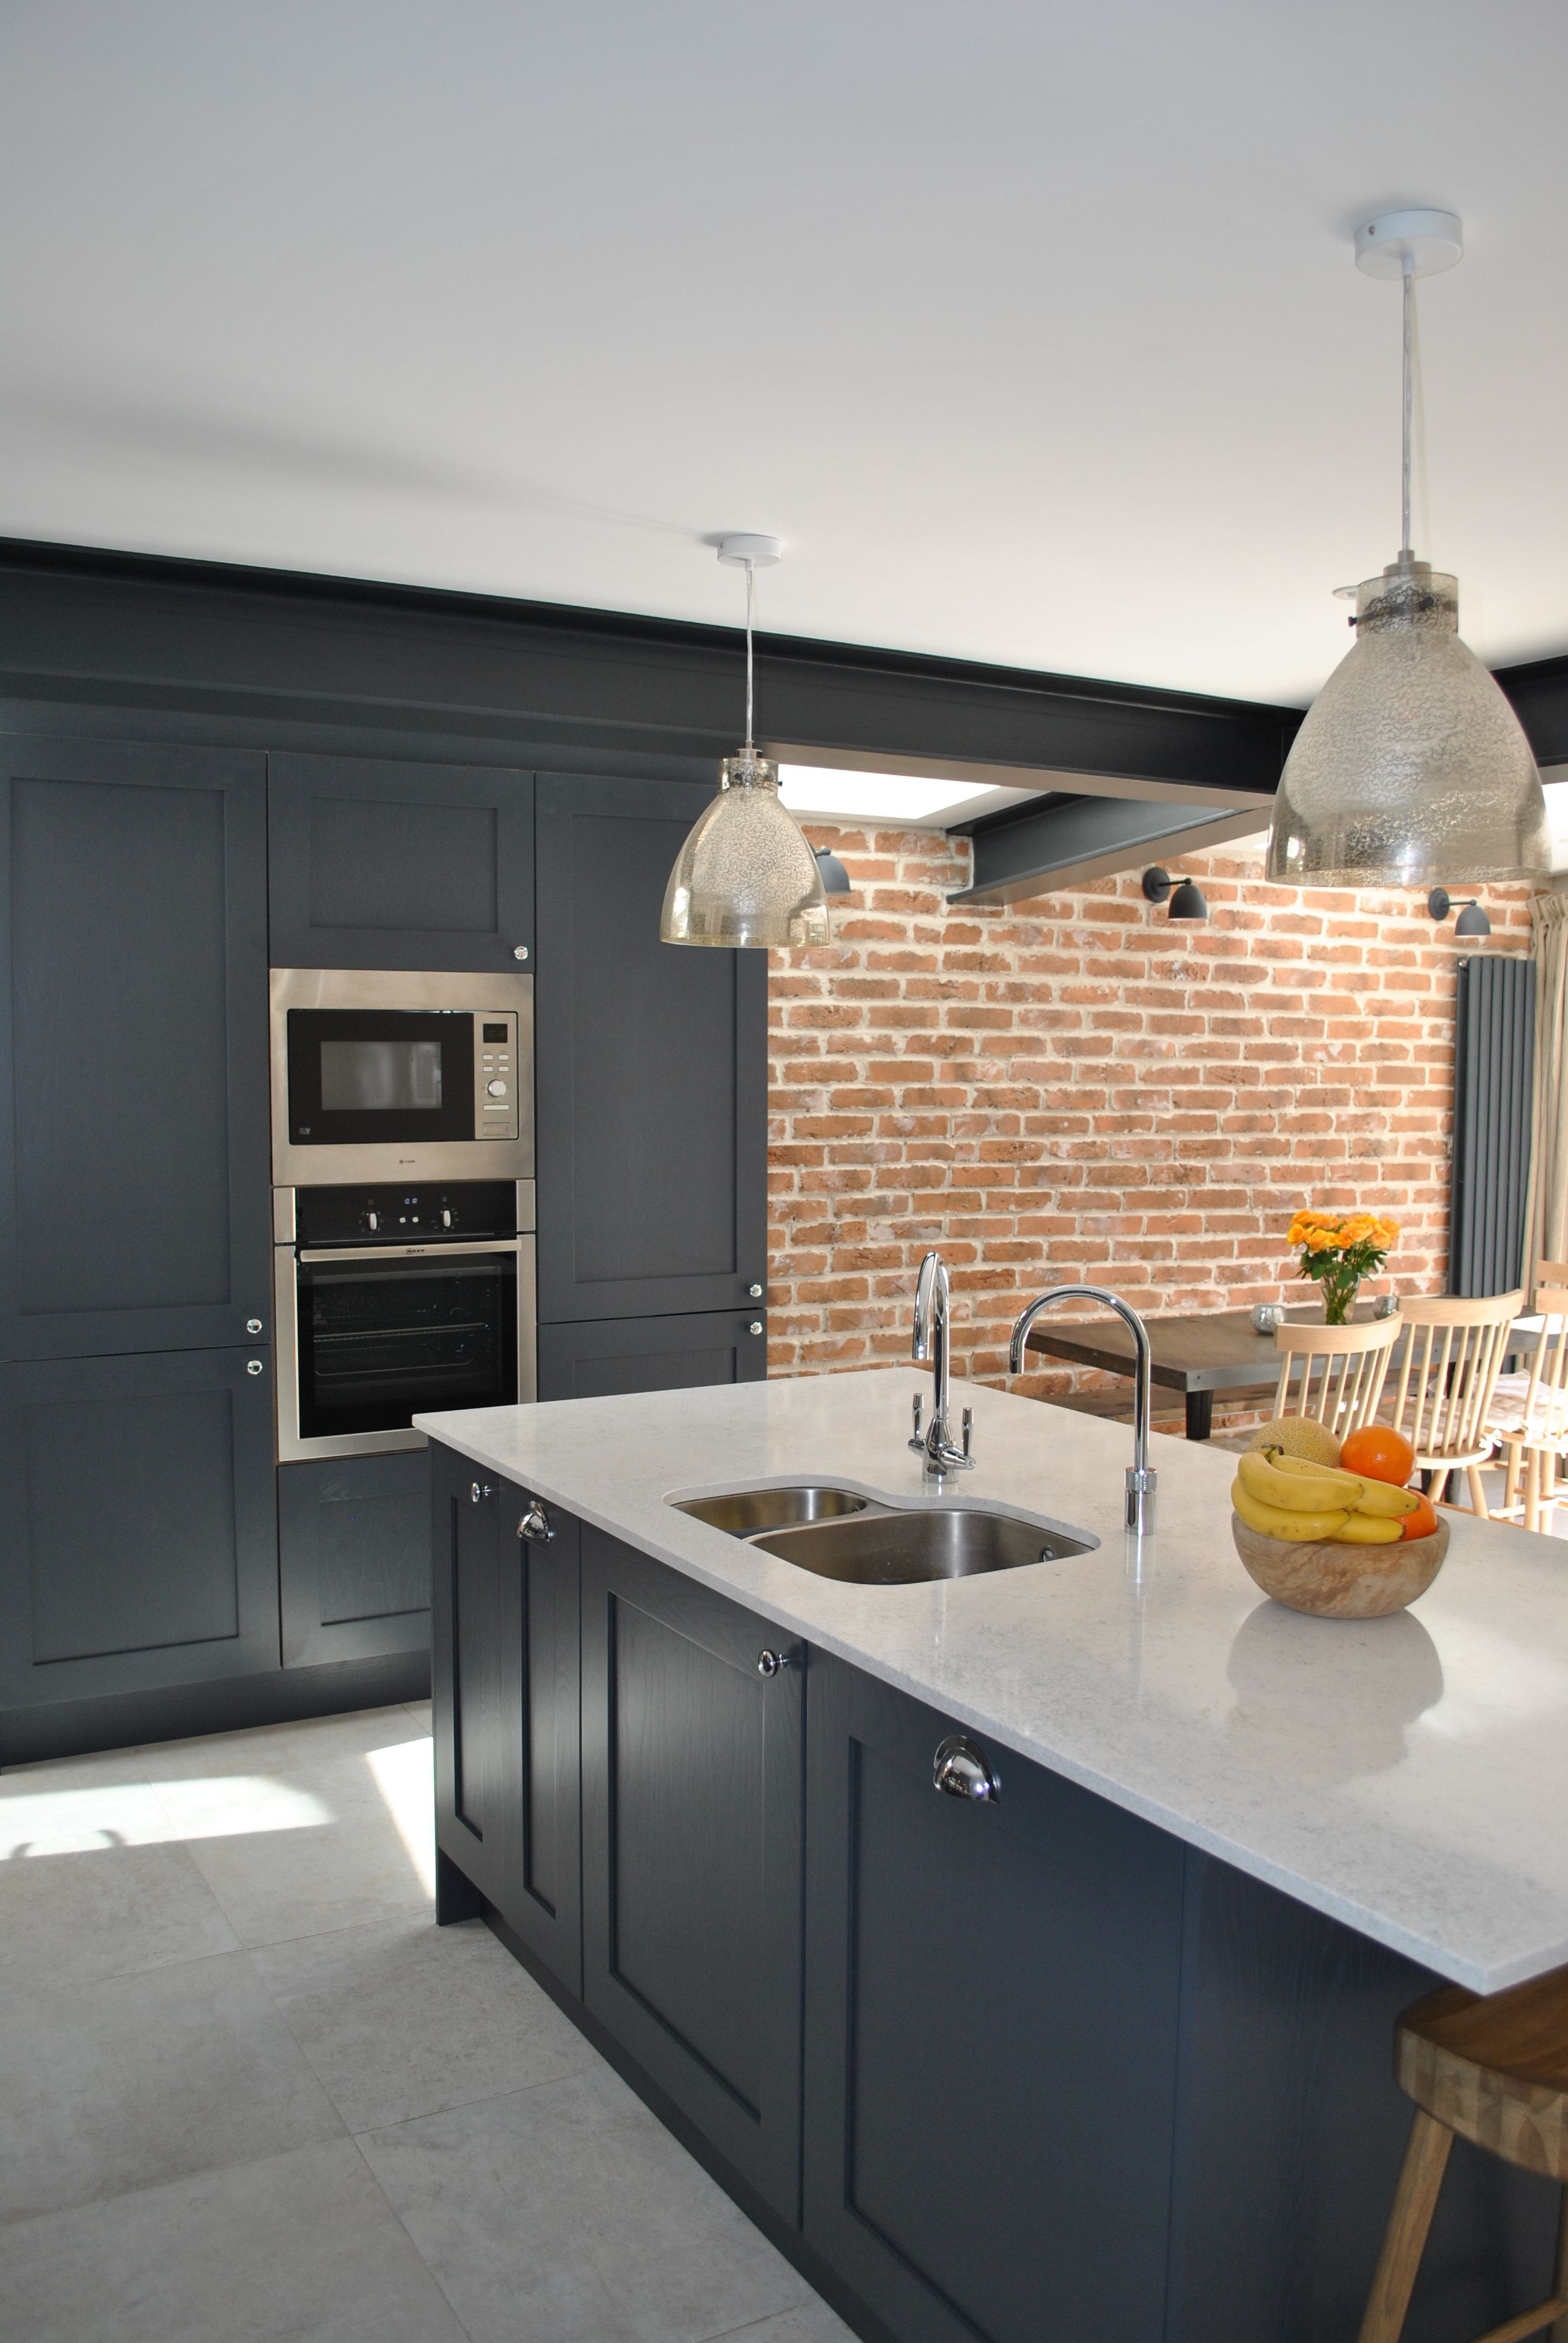 Best Modern Shaker Kitchen In Dark Slate Blue Looks Stunning 400 x 300